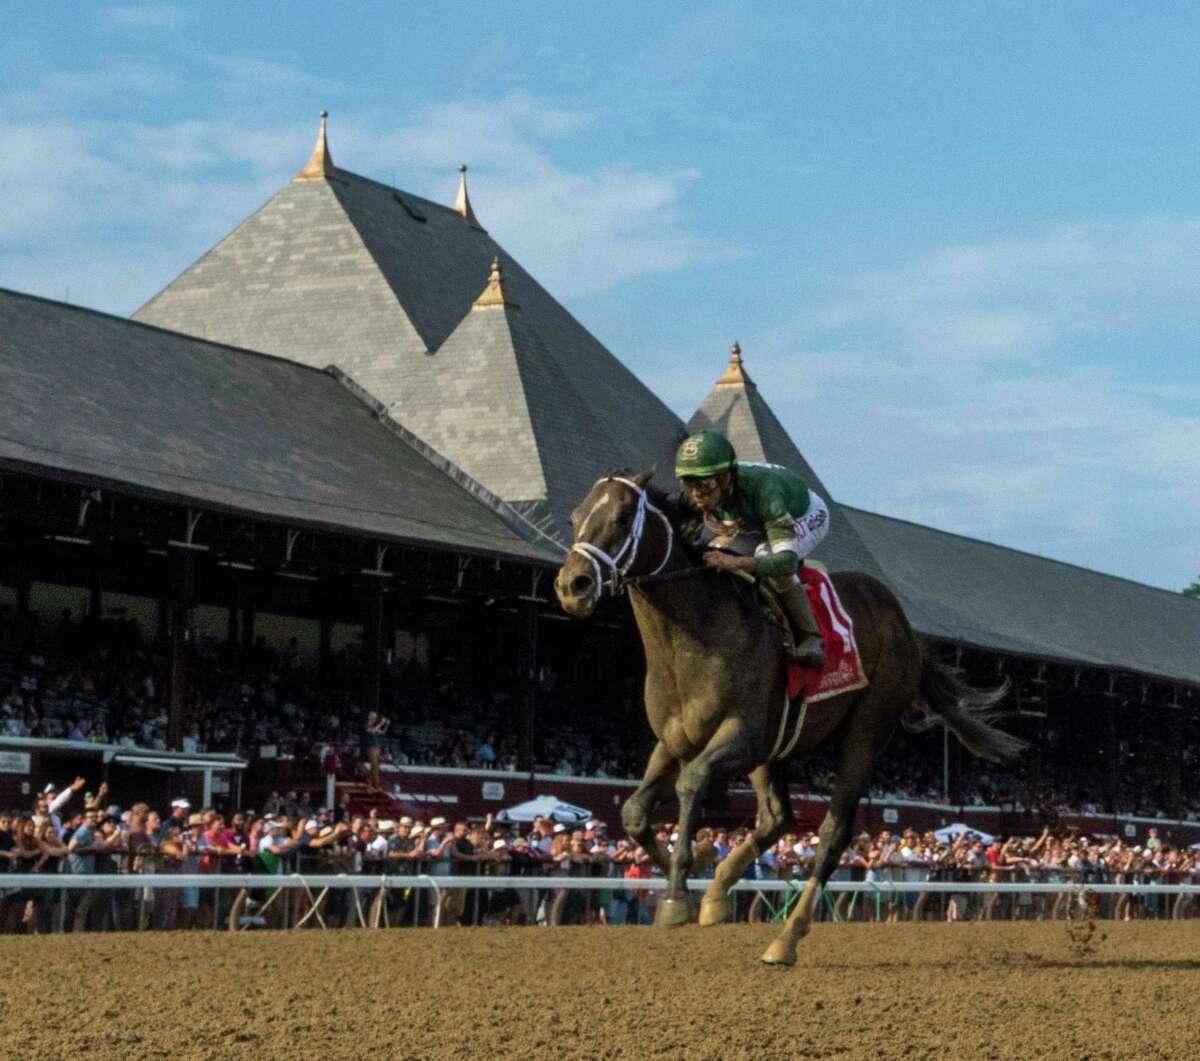 Wit ridden by Irad Ortiz Jr. wins The Sanford Stakes at the Saratoga Race Course Saturday July 17, 2021 in Saratoga Springs, N.Y. Photo Special to the Times Union by Tim Lanahan/ Skip Dickstein Photography